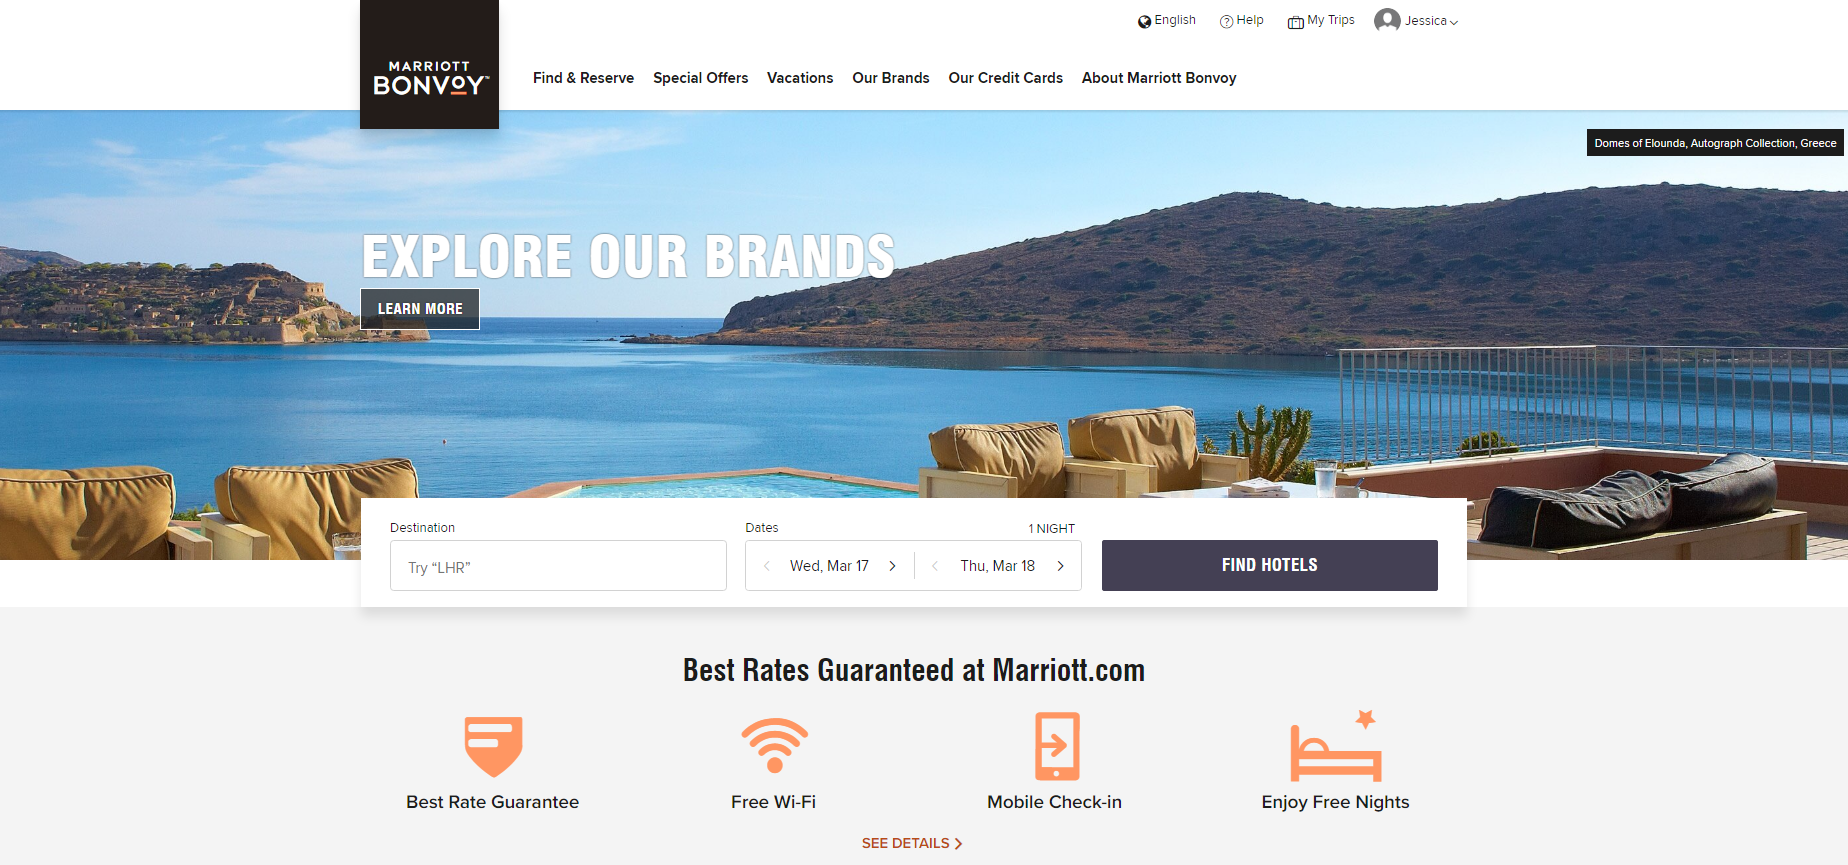 Marriott Bonvoy's membership page highlights their best rate guarantee, free Wi-Fi, mobile check-in, and free nights. Catch your customers' attention by putting the best benefits first.